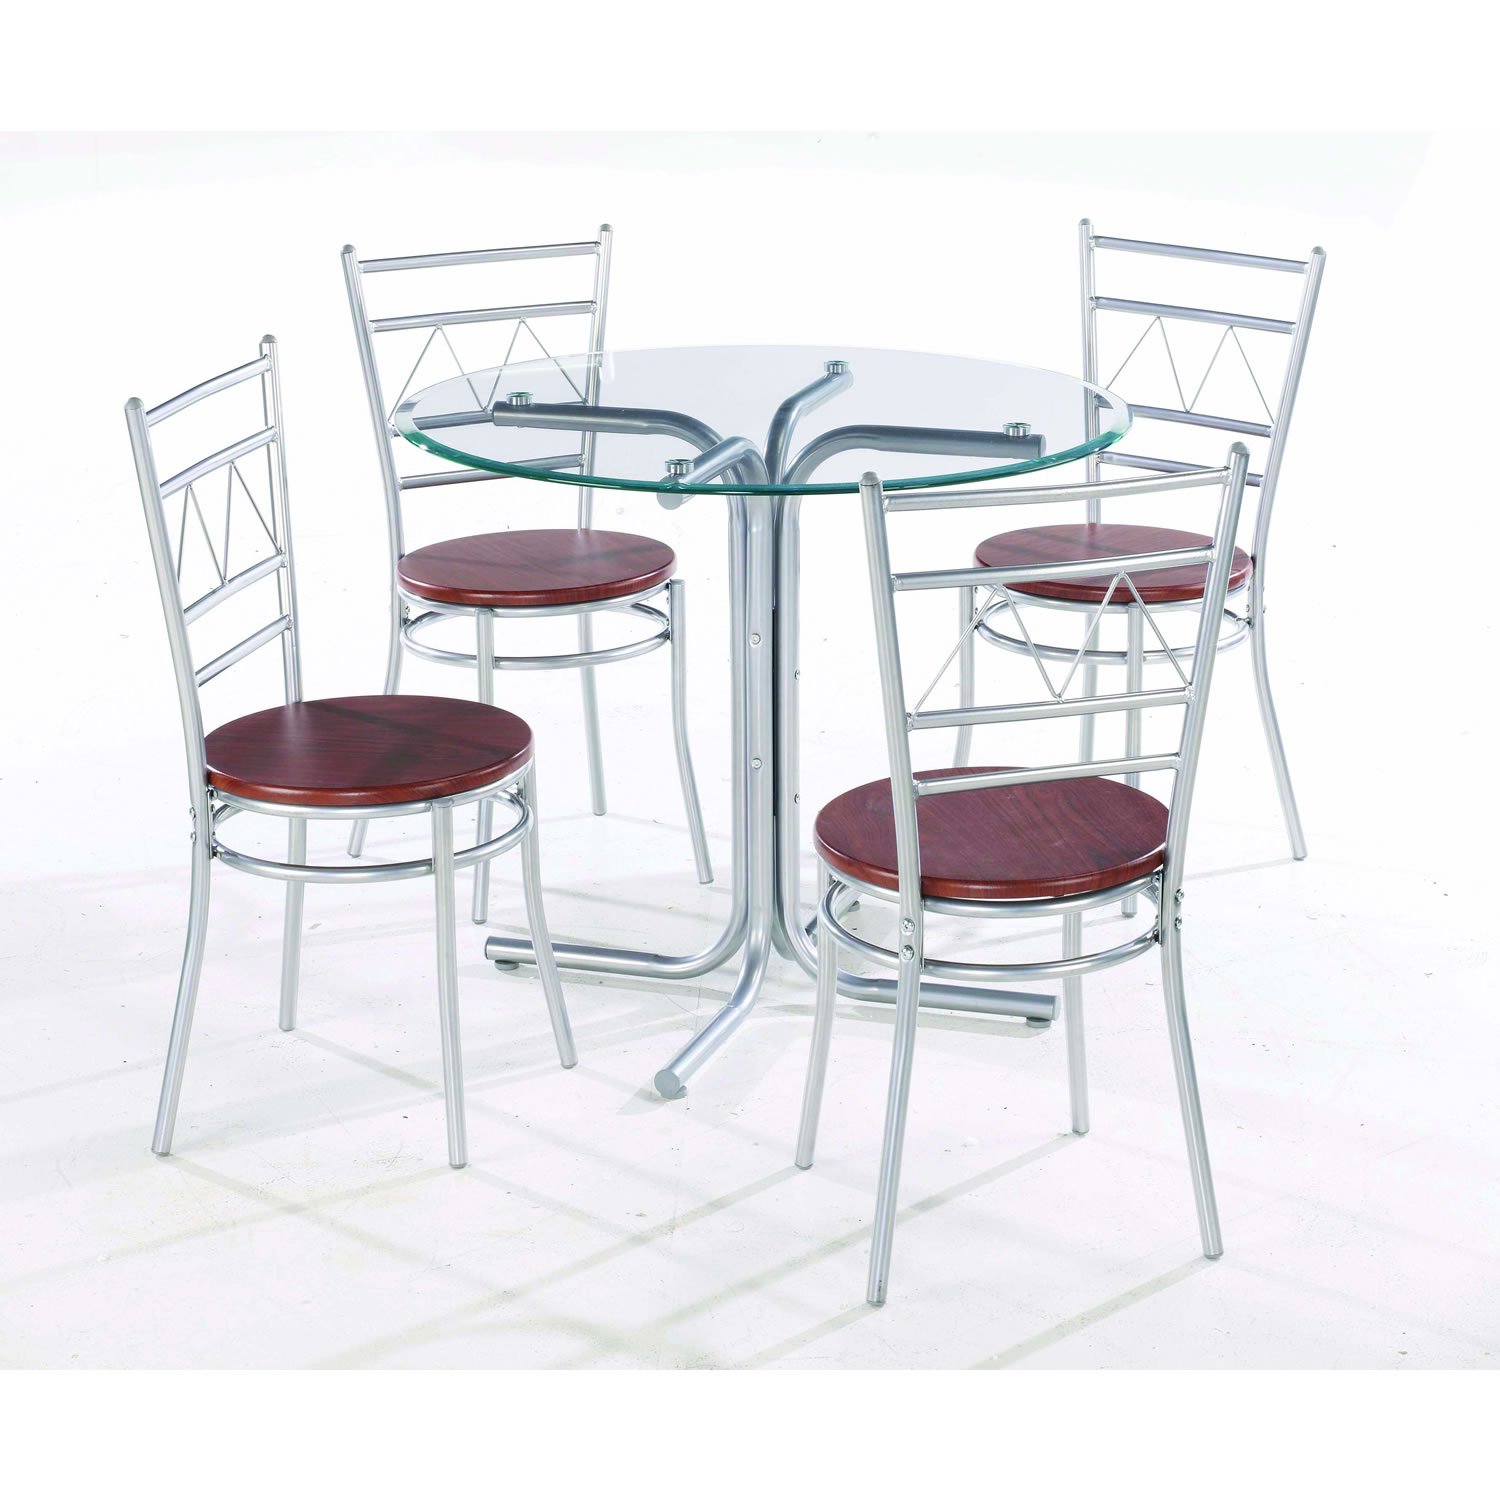 Picture of: Glass table and chairs for garden